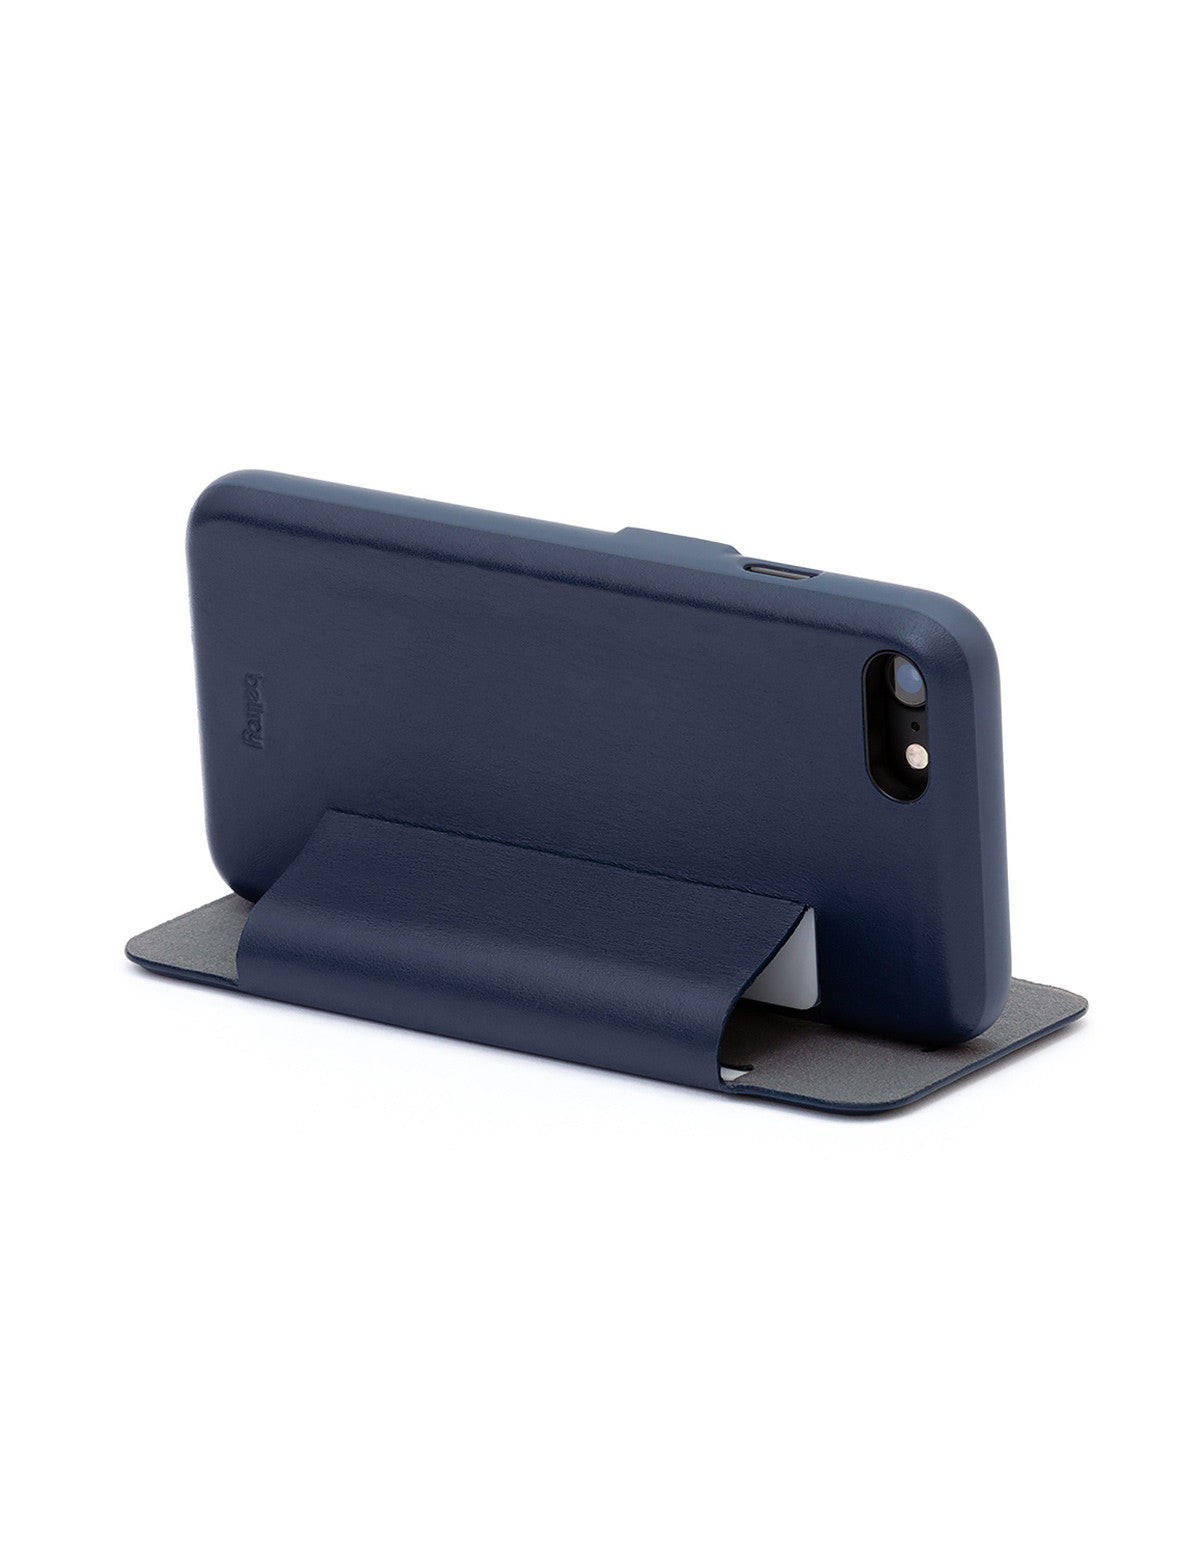 Bellroy Phone Wallet i7 Blue Steel - Still Life - 4